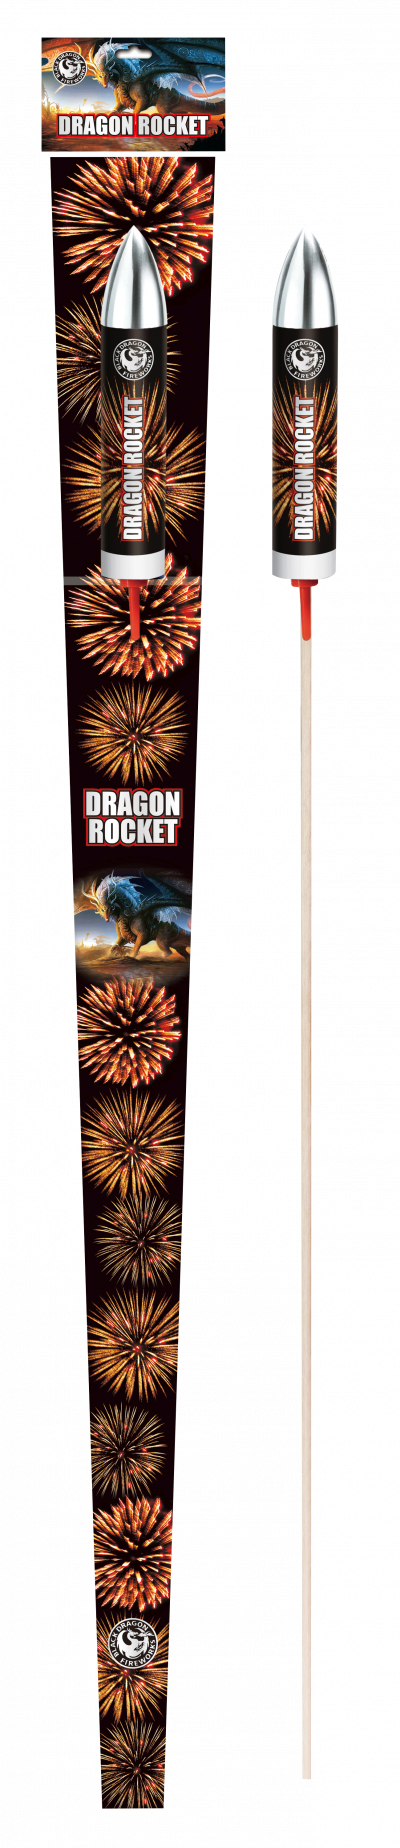 Dragon Rocket